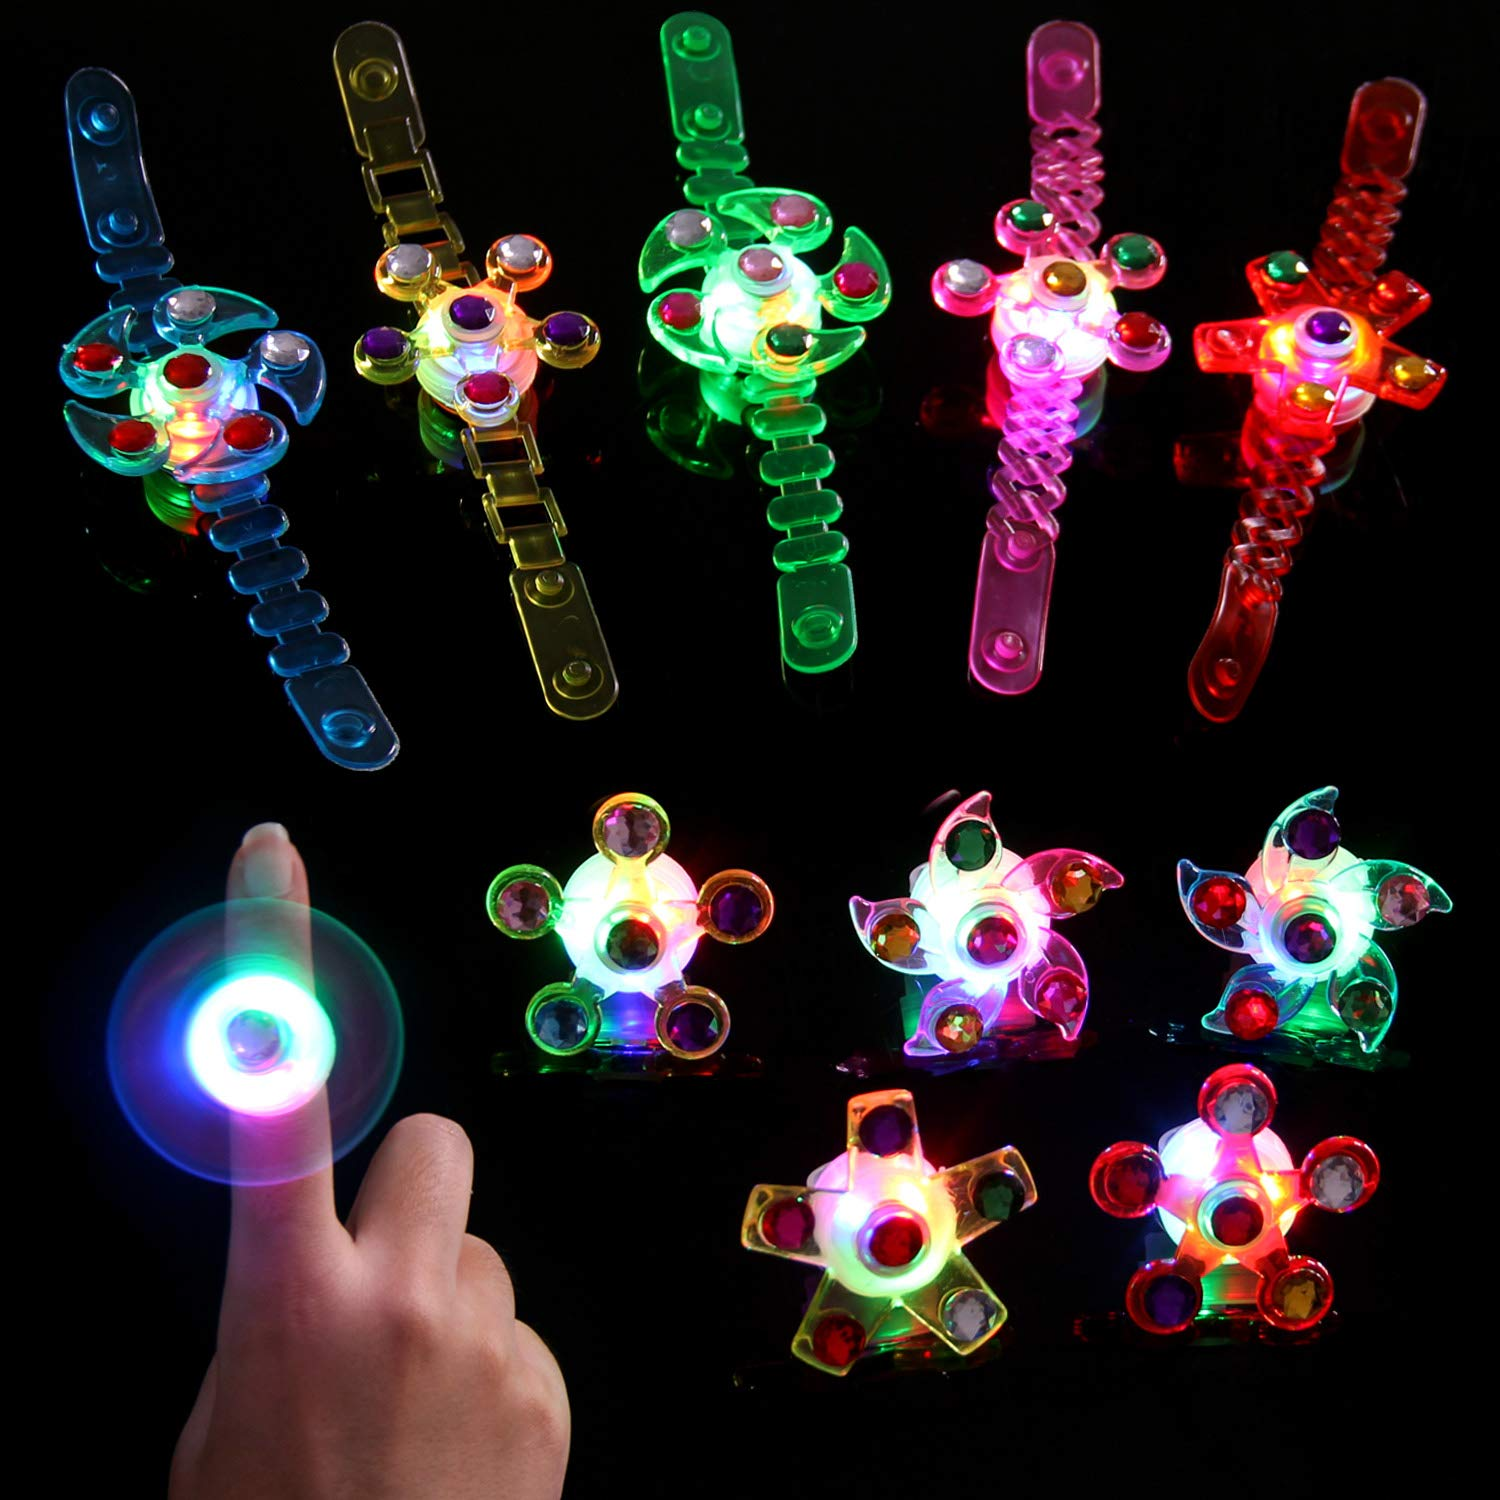 Satkago 18Pcs Light Up Rings Bracelets LED Party Favors for Kids Boys Glow in The Dark Party Supplies Bulk Neon Party Supplies Hand Spin Stress Relief Anxiety Toys Prizes for Kids Classroom by Satkago (Image #1)